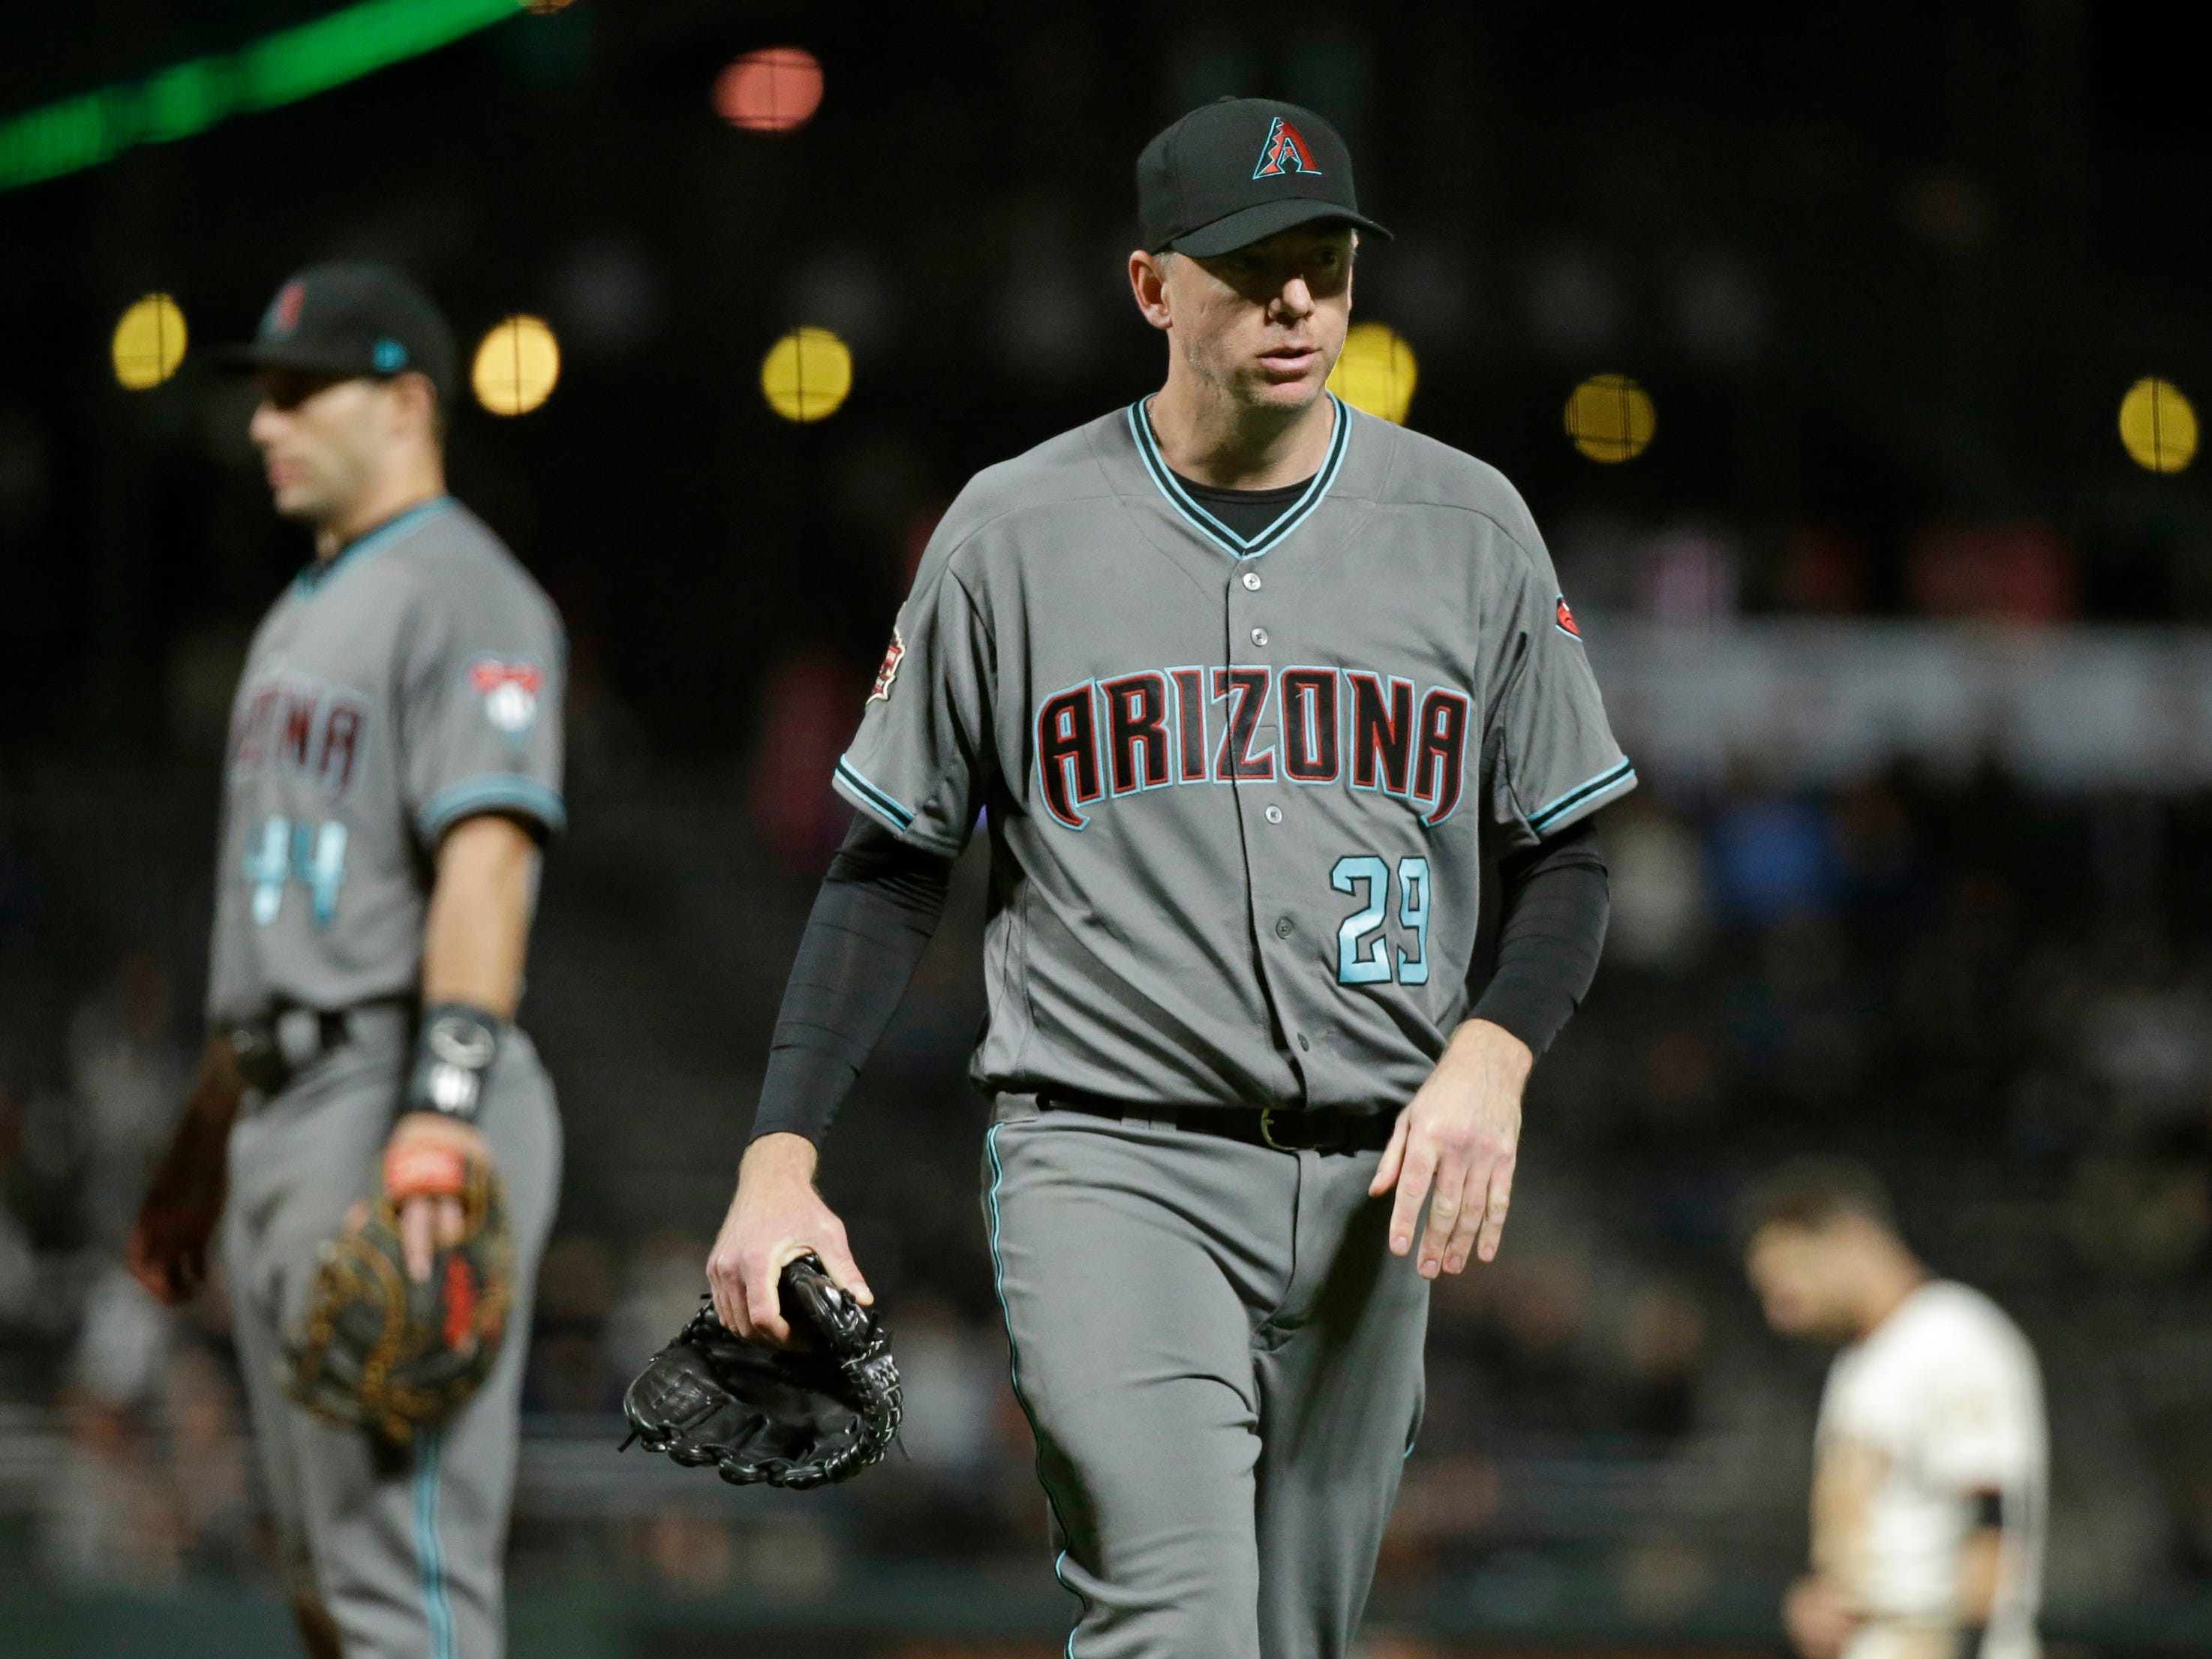 Arizona Diamondbacks relief pitcher Brad Ziegler walks to the dugout after being removed in the ninth inning of a baseball game against the San Francisco Giants, Tuesday, Aug. 28, 2018, in San Francisco. San Francisco won the game 1-0 and Ziegler was the losing pitcher.